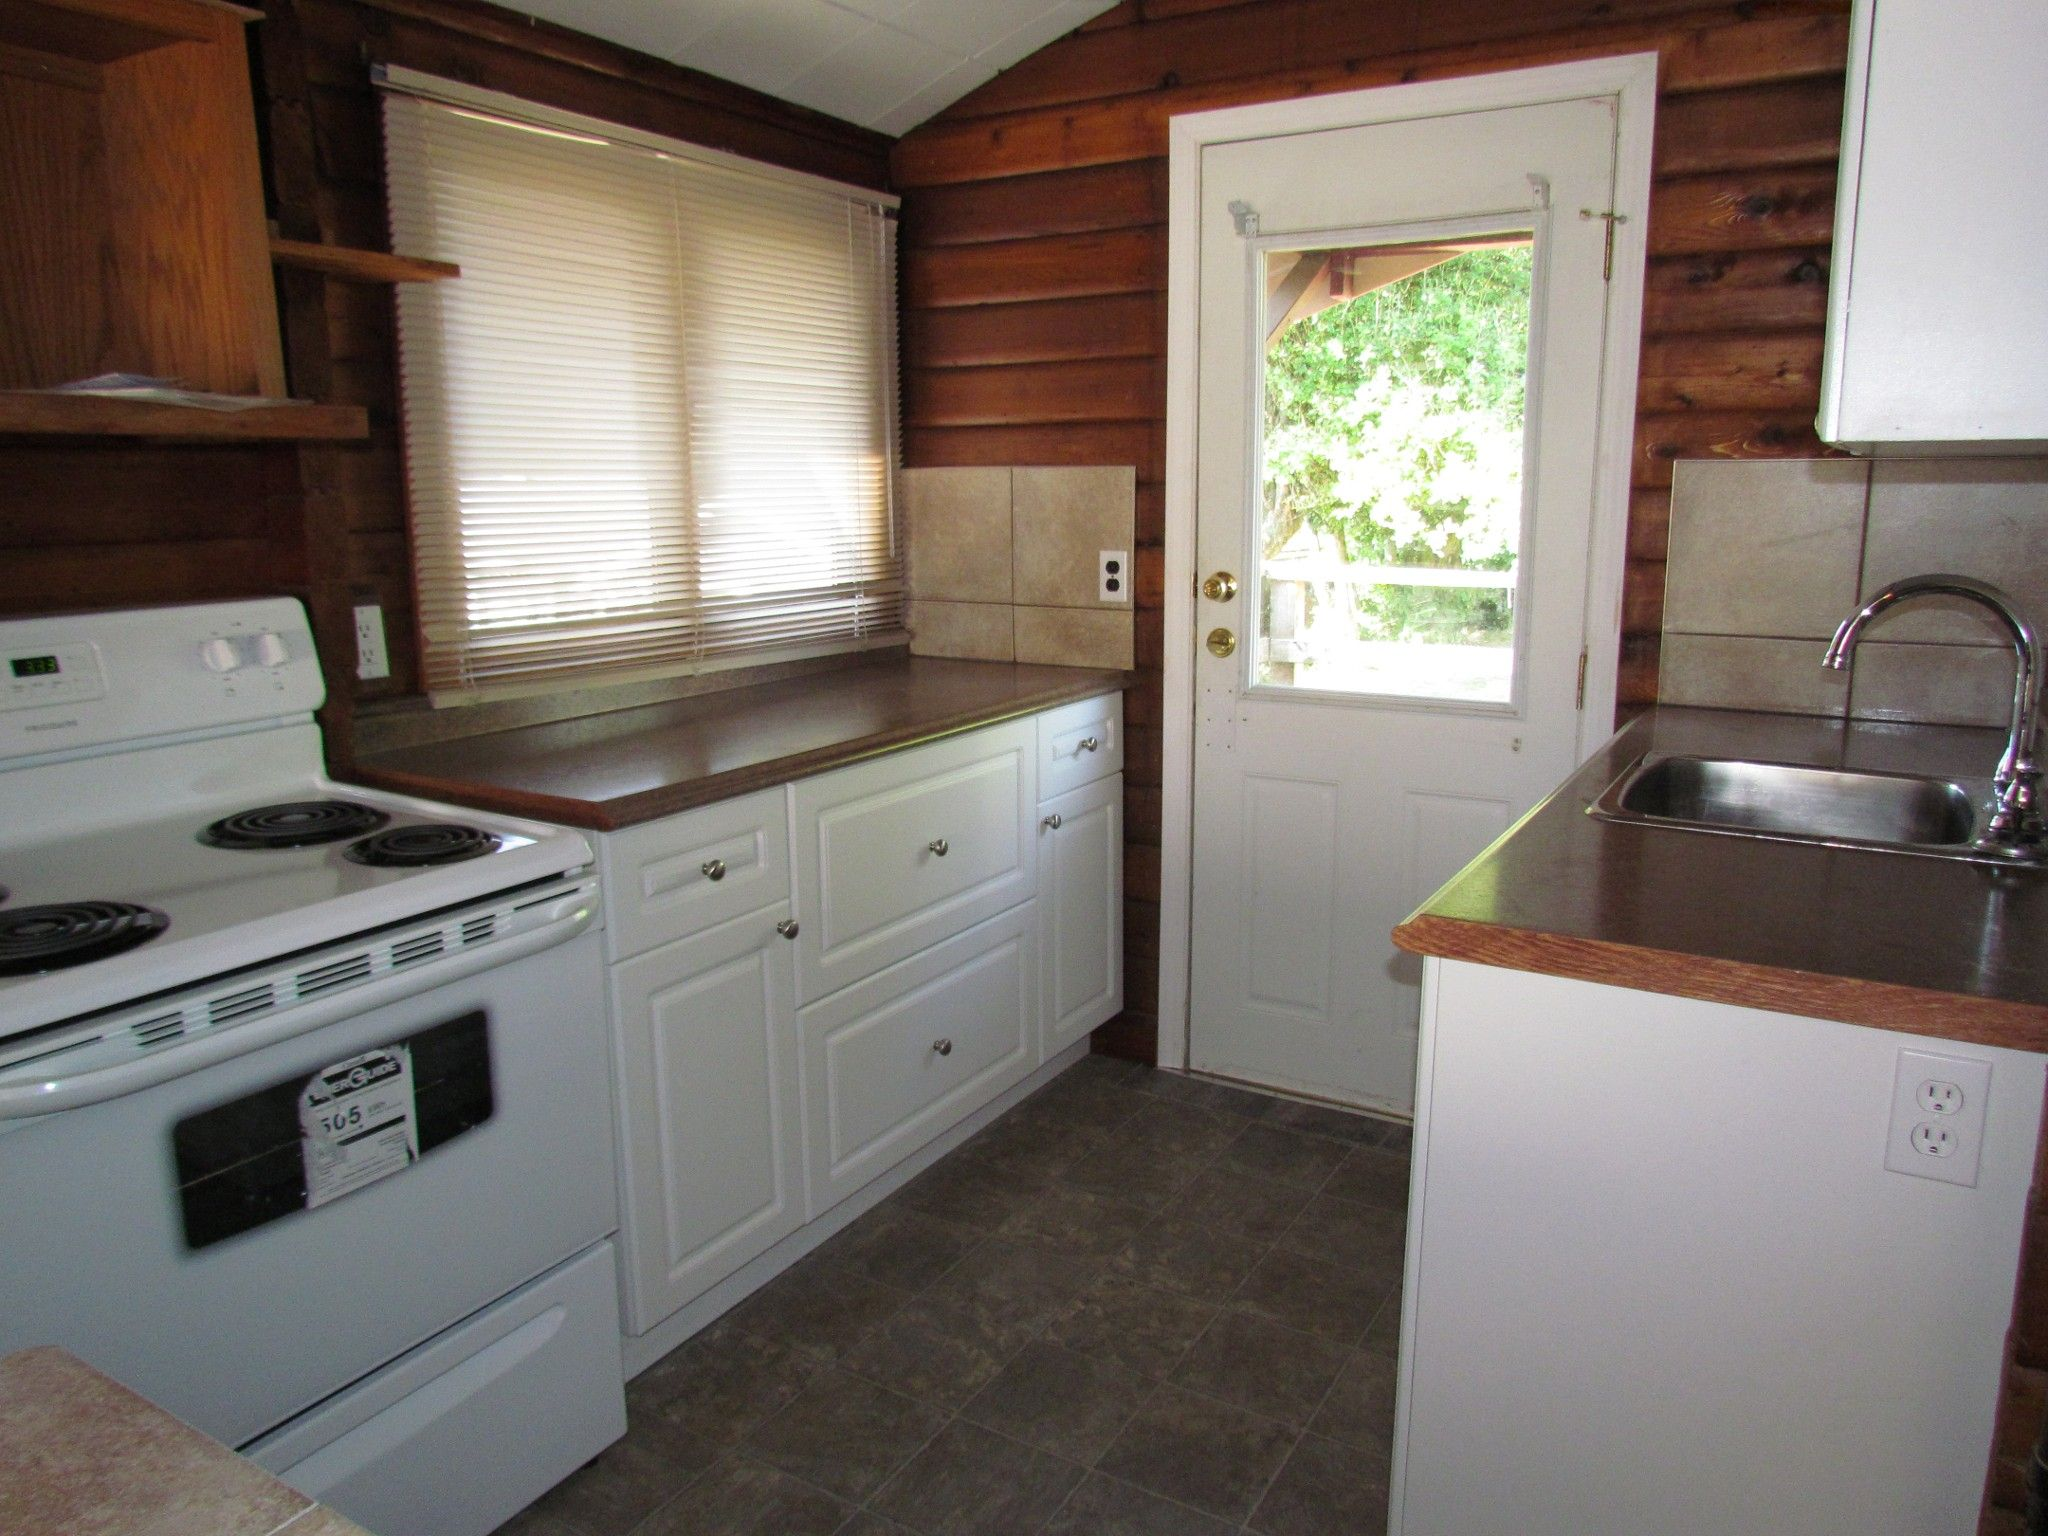 Photo 4: Photos: 33489 George Ferguson Way in Abbotsford: Central Abbotsford House for rent